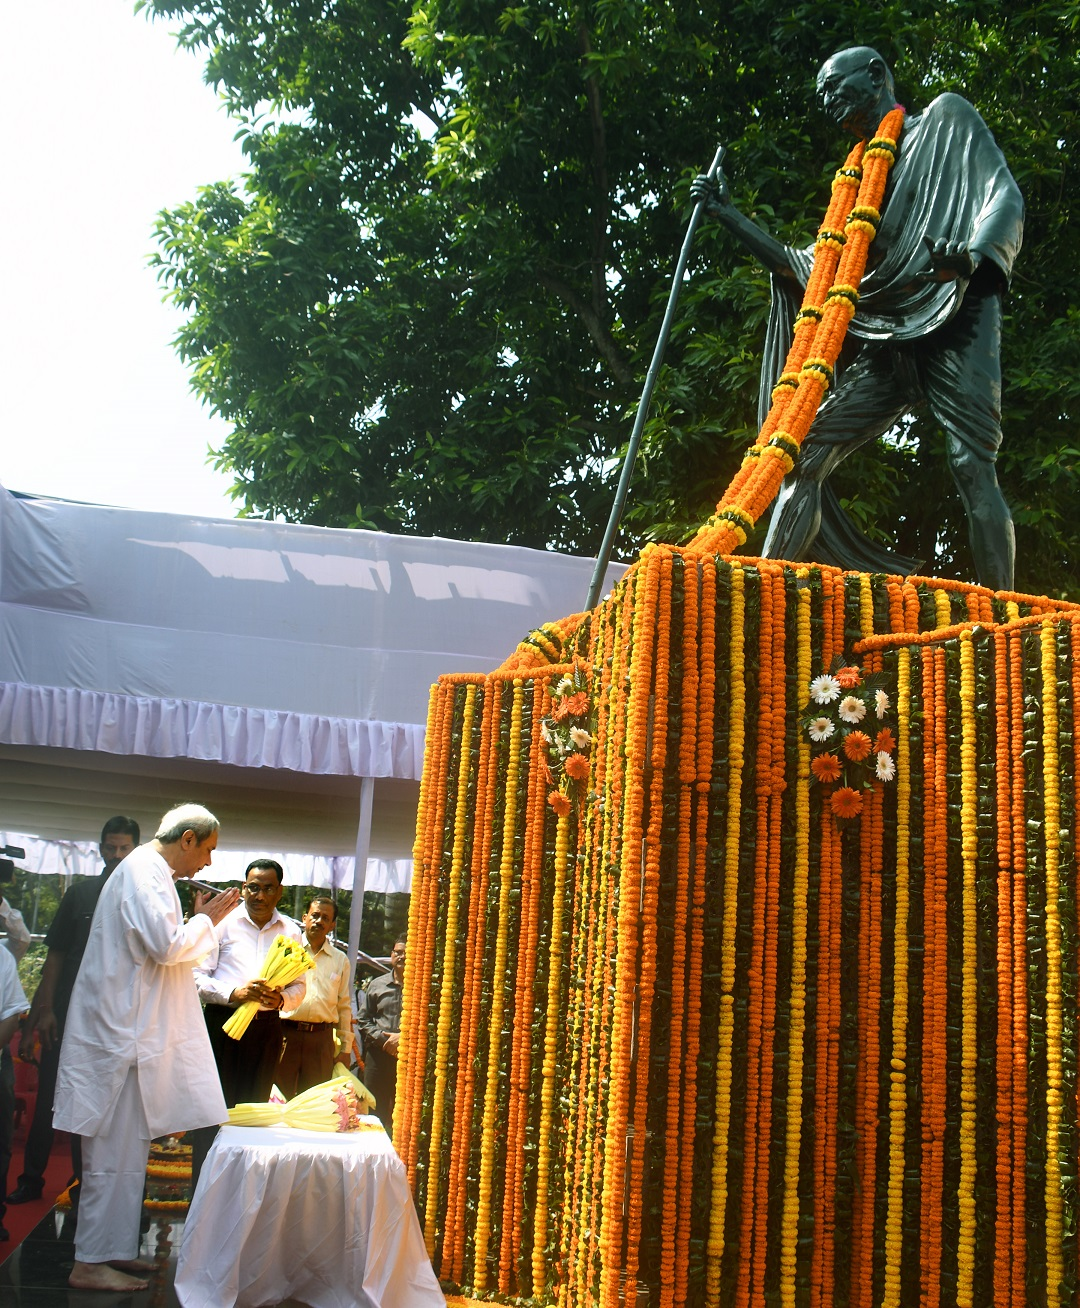 Chief Minister Shri Naveen Patnaik paying floral tribute to Father of Nation Mahatma Gandhi on State level Gandhi Jayanti at OLA premises